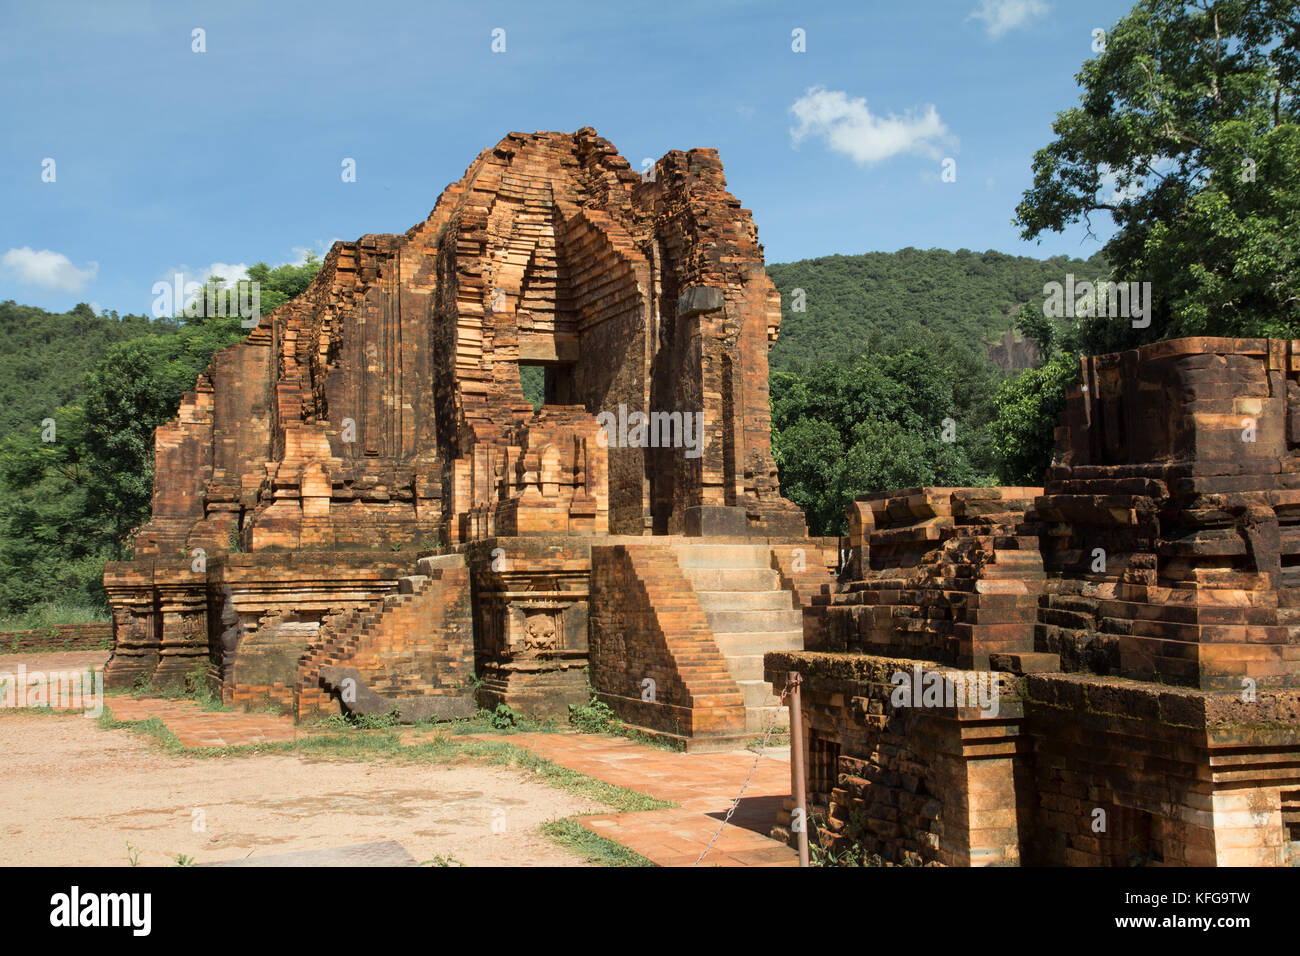 ancient ruins of lost civilization - Stock Image